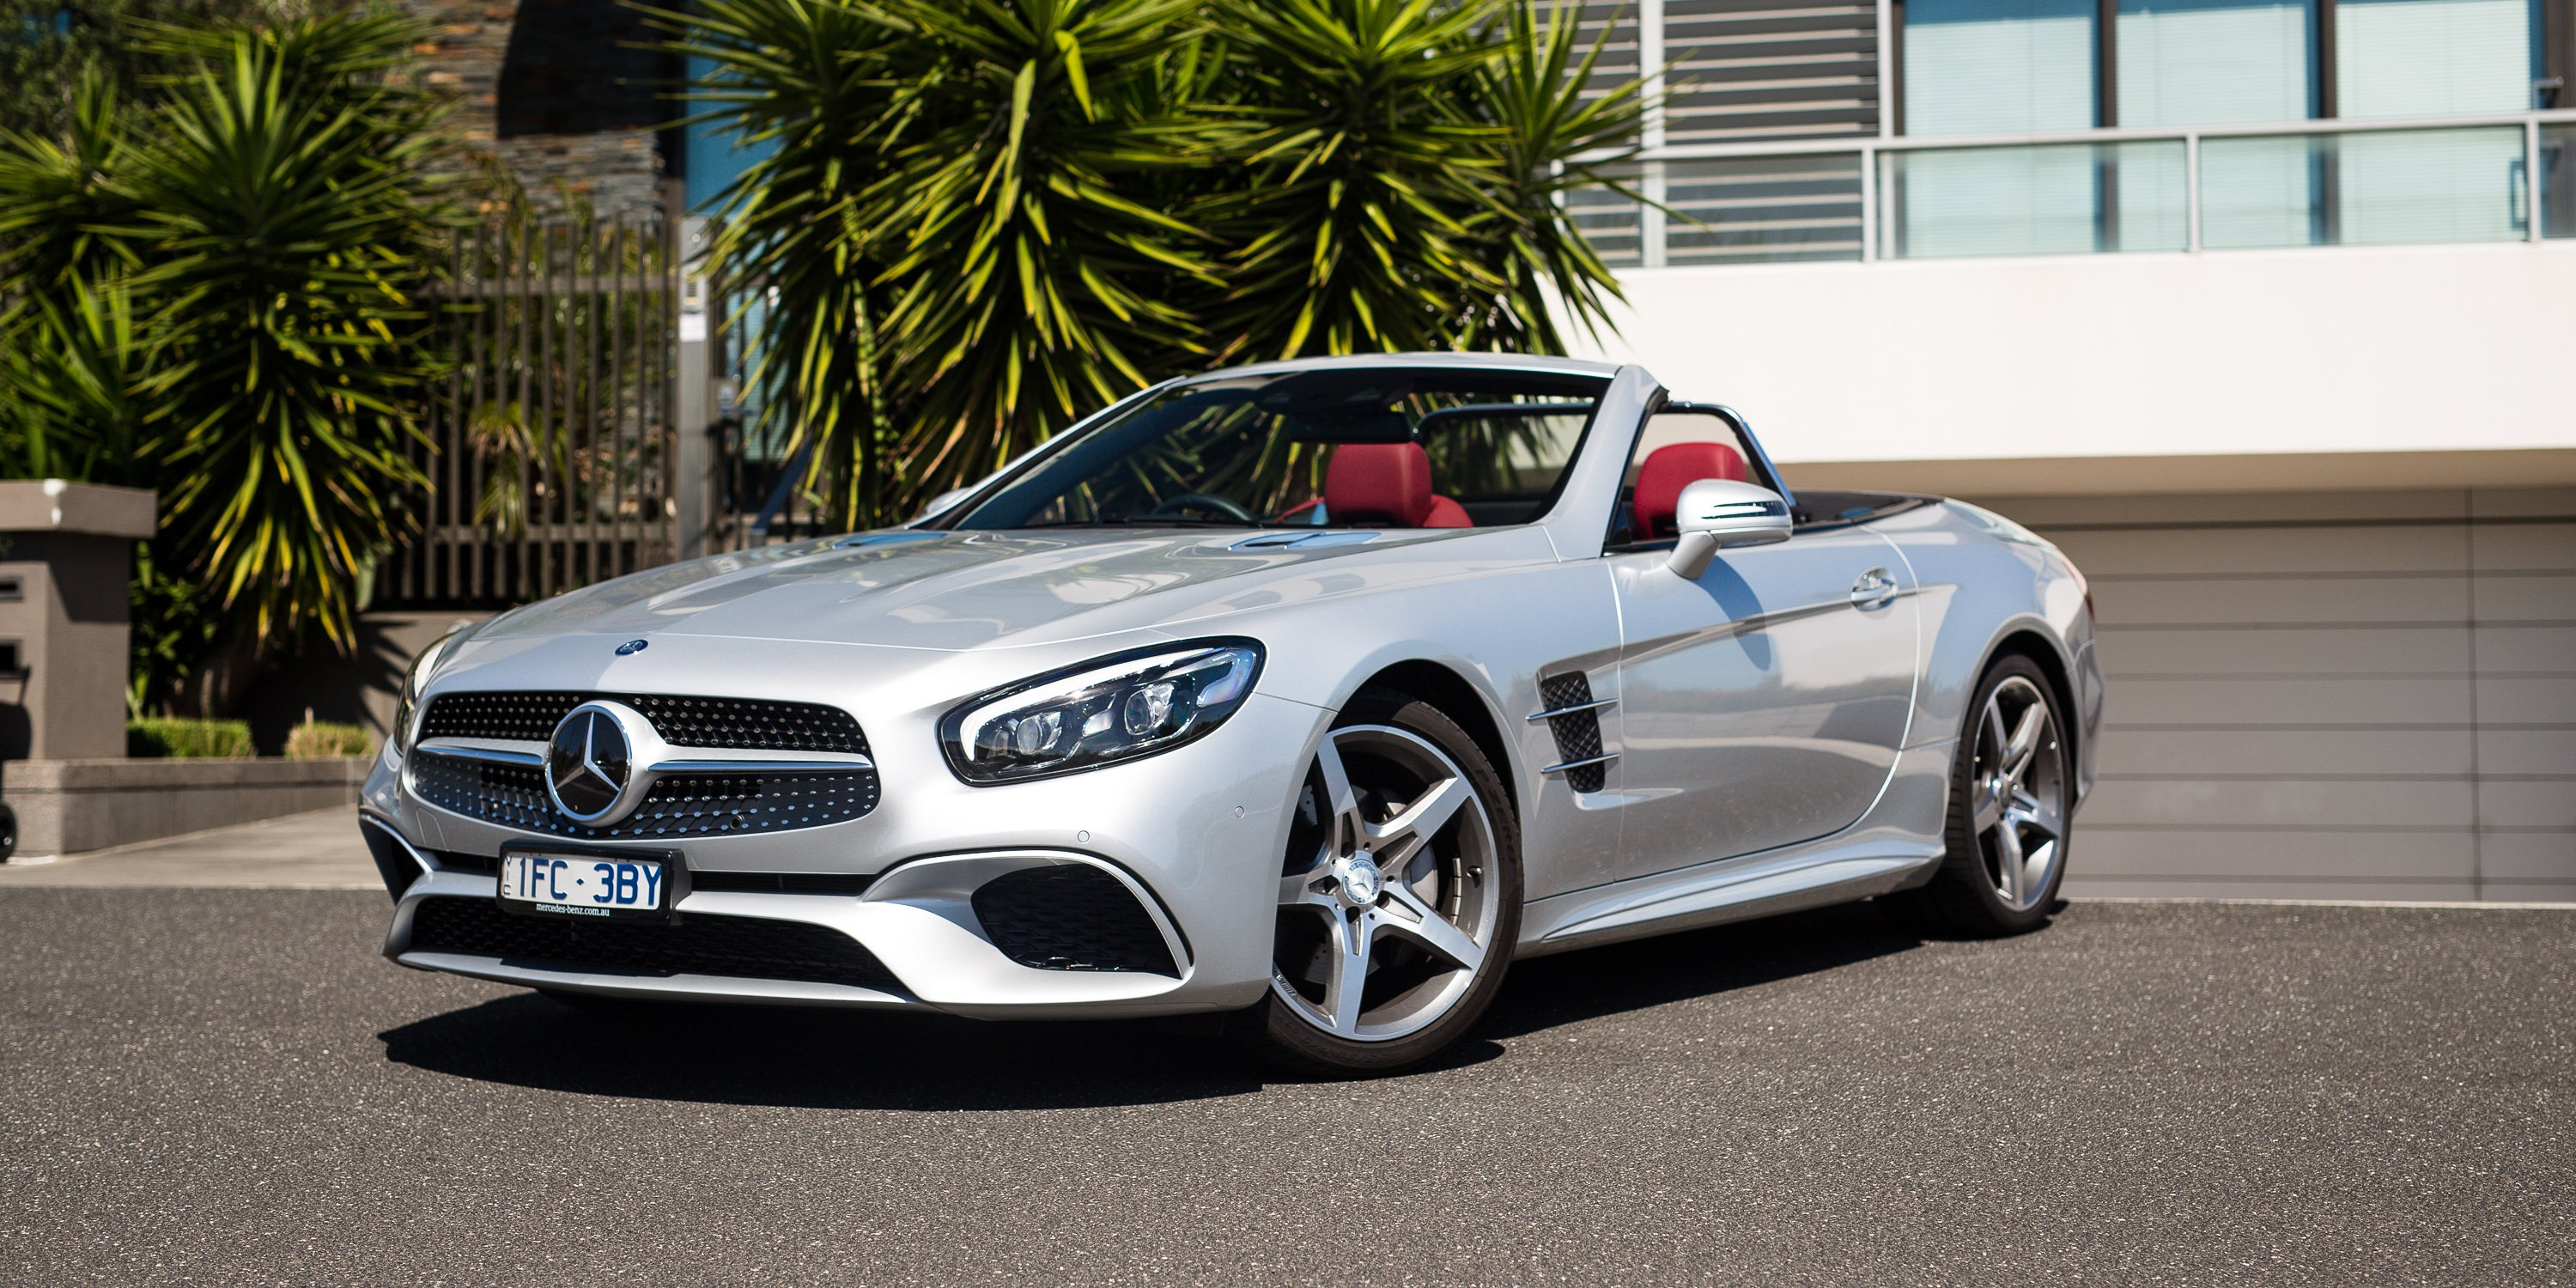 2017 mercedes benz sl400 review photos caradvice for Mercedes benz sl550